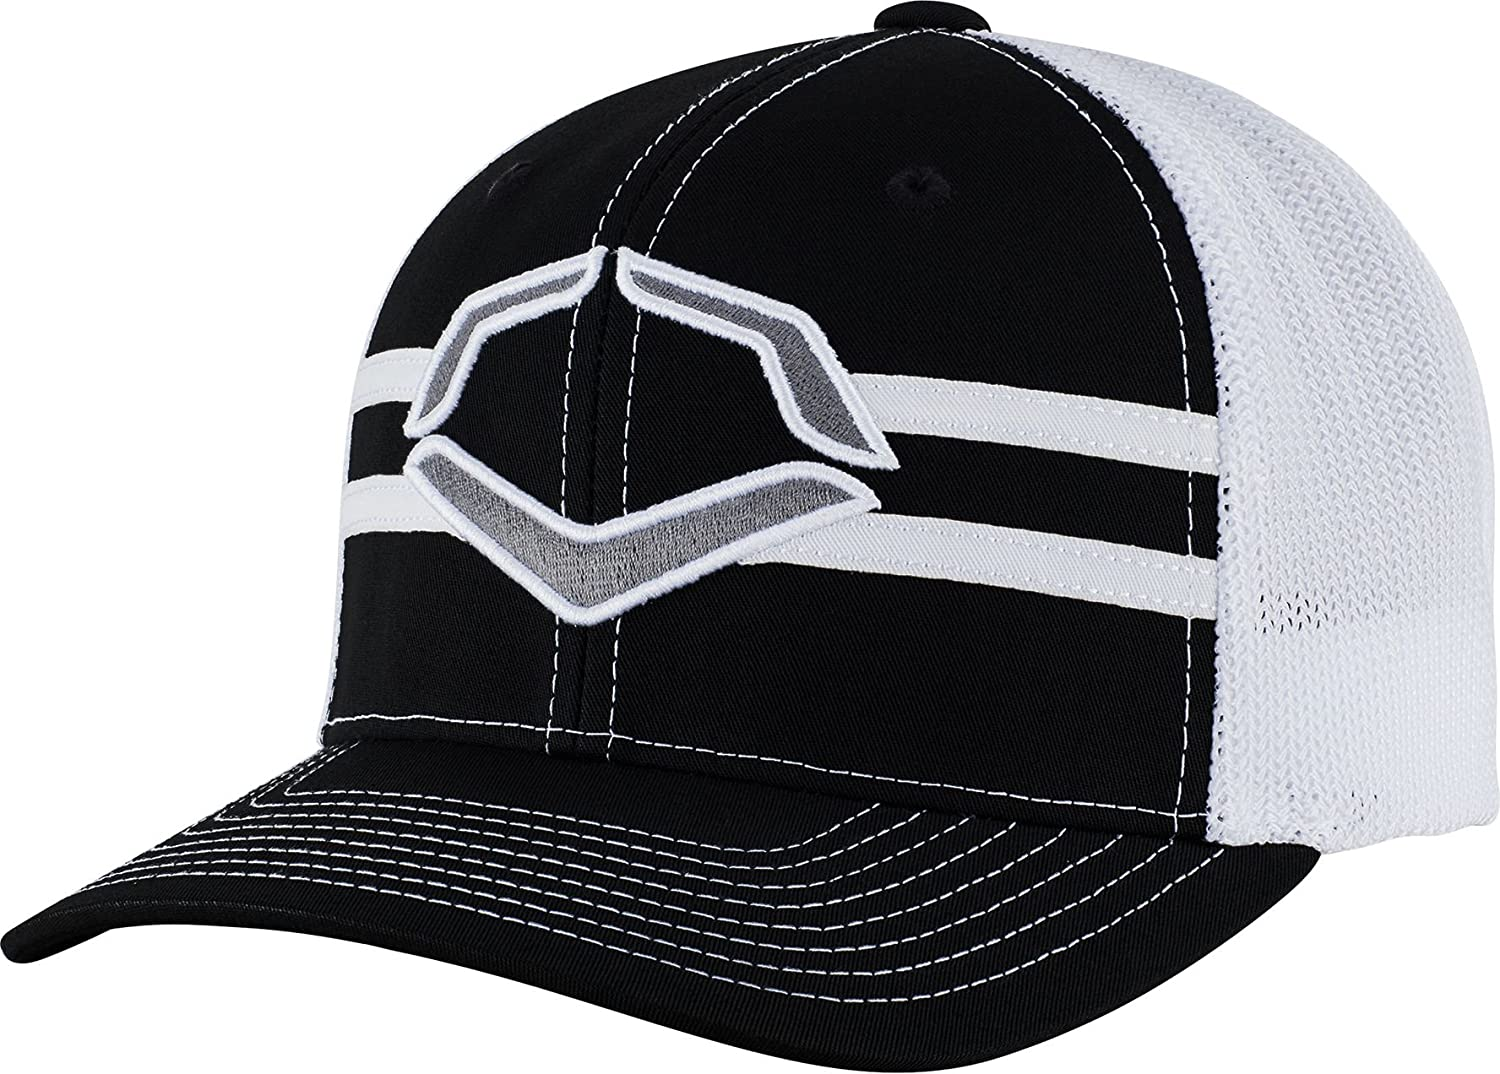 07cd36c98e32d Amazon.com  Wilson Sporting Goods Evoshield USA Logo Flexfit Trucker Hat   Sports   Outdoors